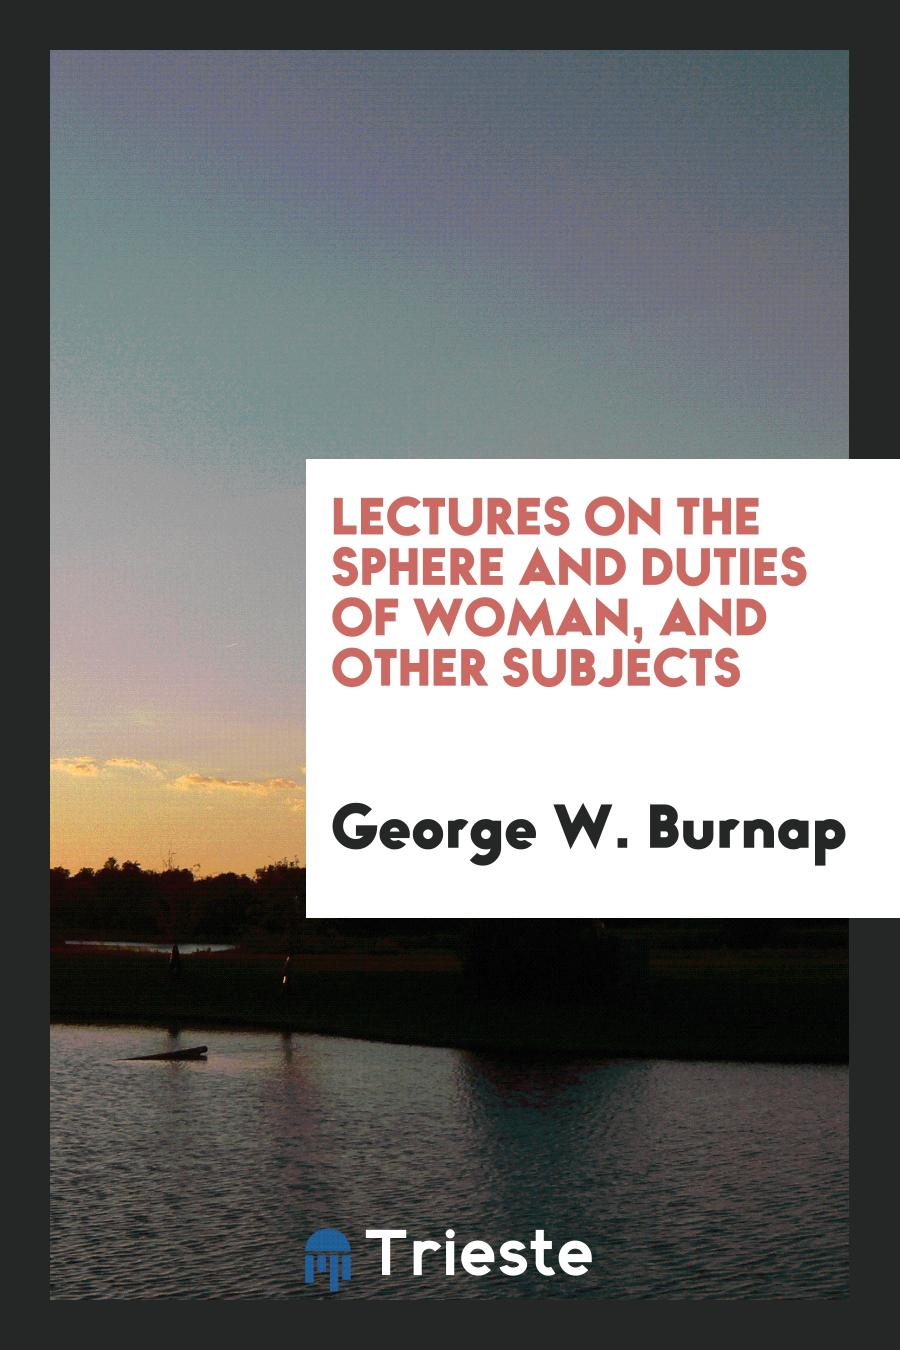 Lectures on the Sphere and Duties of Woman, and Other Subjects